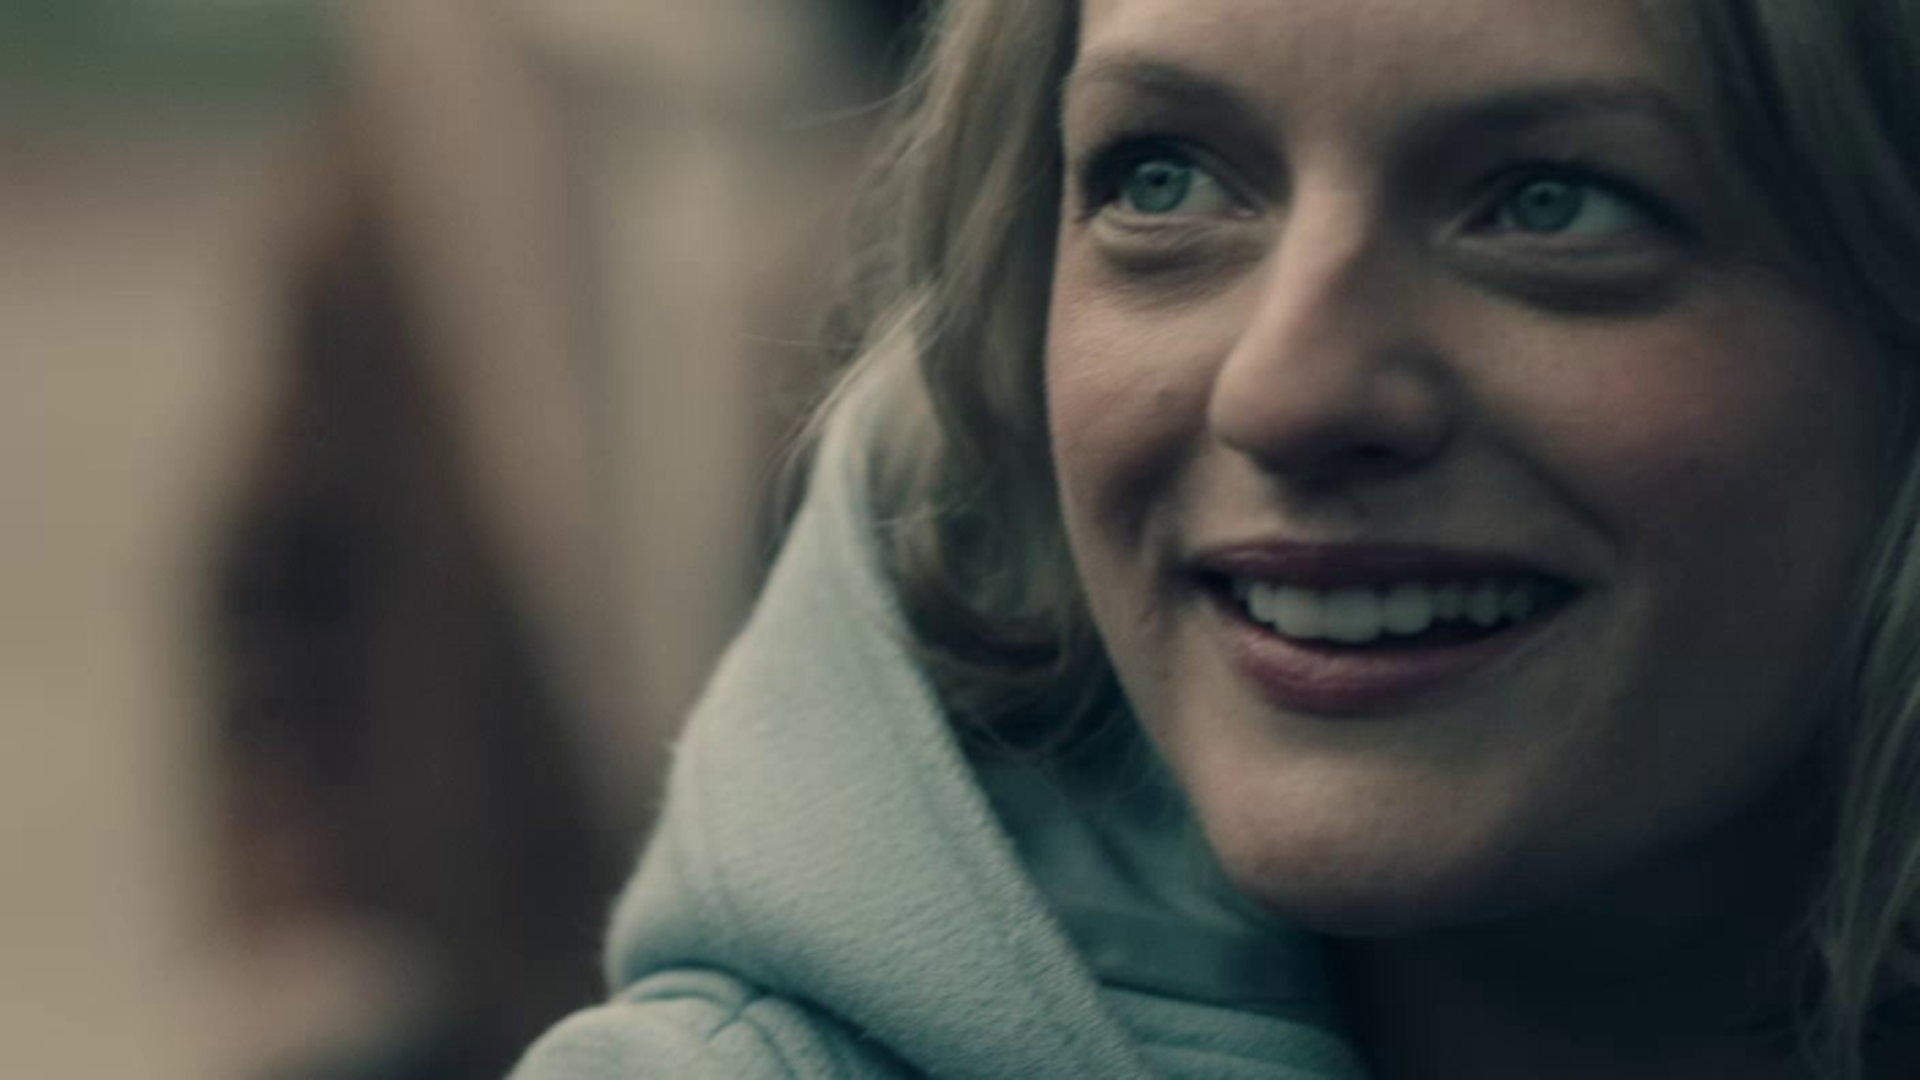 secret daughter and the handmaid's tale The tv adaptation of the handmaid's tale has finally brought  the show: at the  end of the first episode, offred reveals her secret,  offred's daughter is biracial,  rather than having the pale hair described in the book.